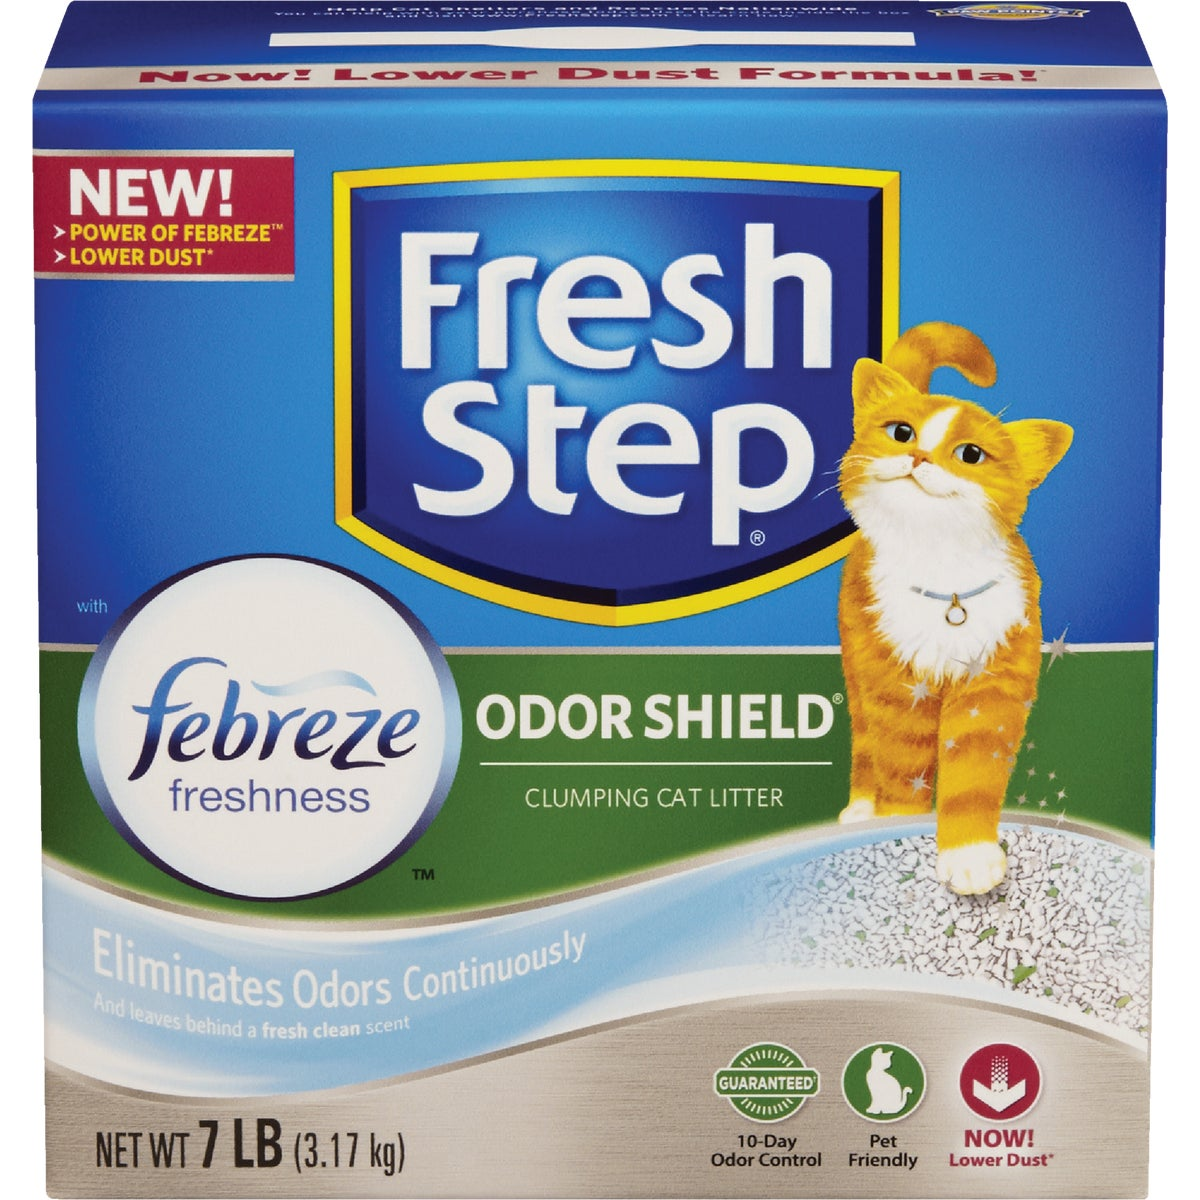 7LB FRSH STEP CAT LITTER